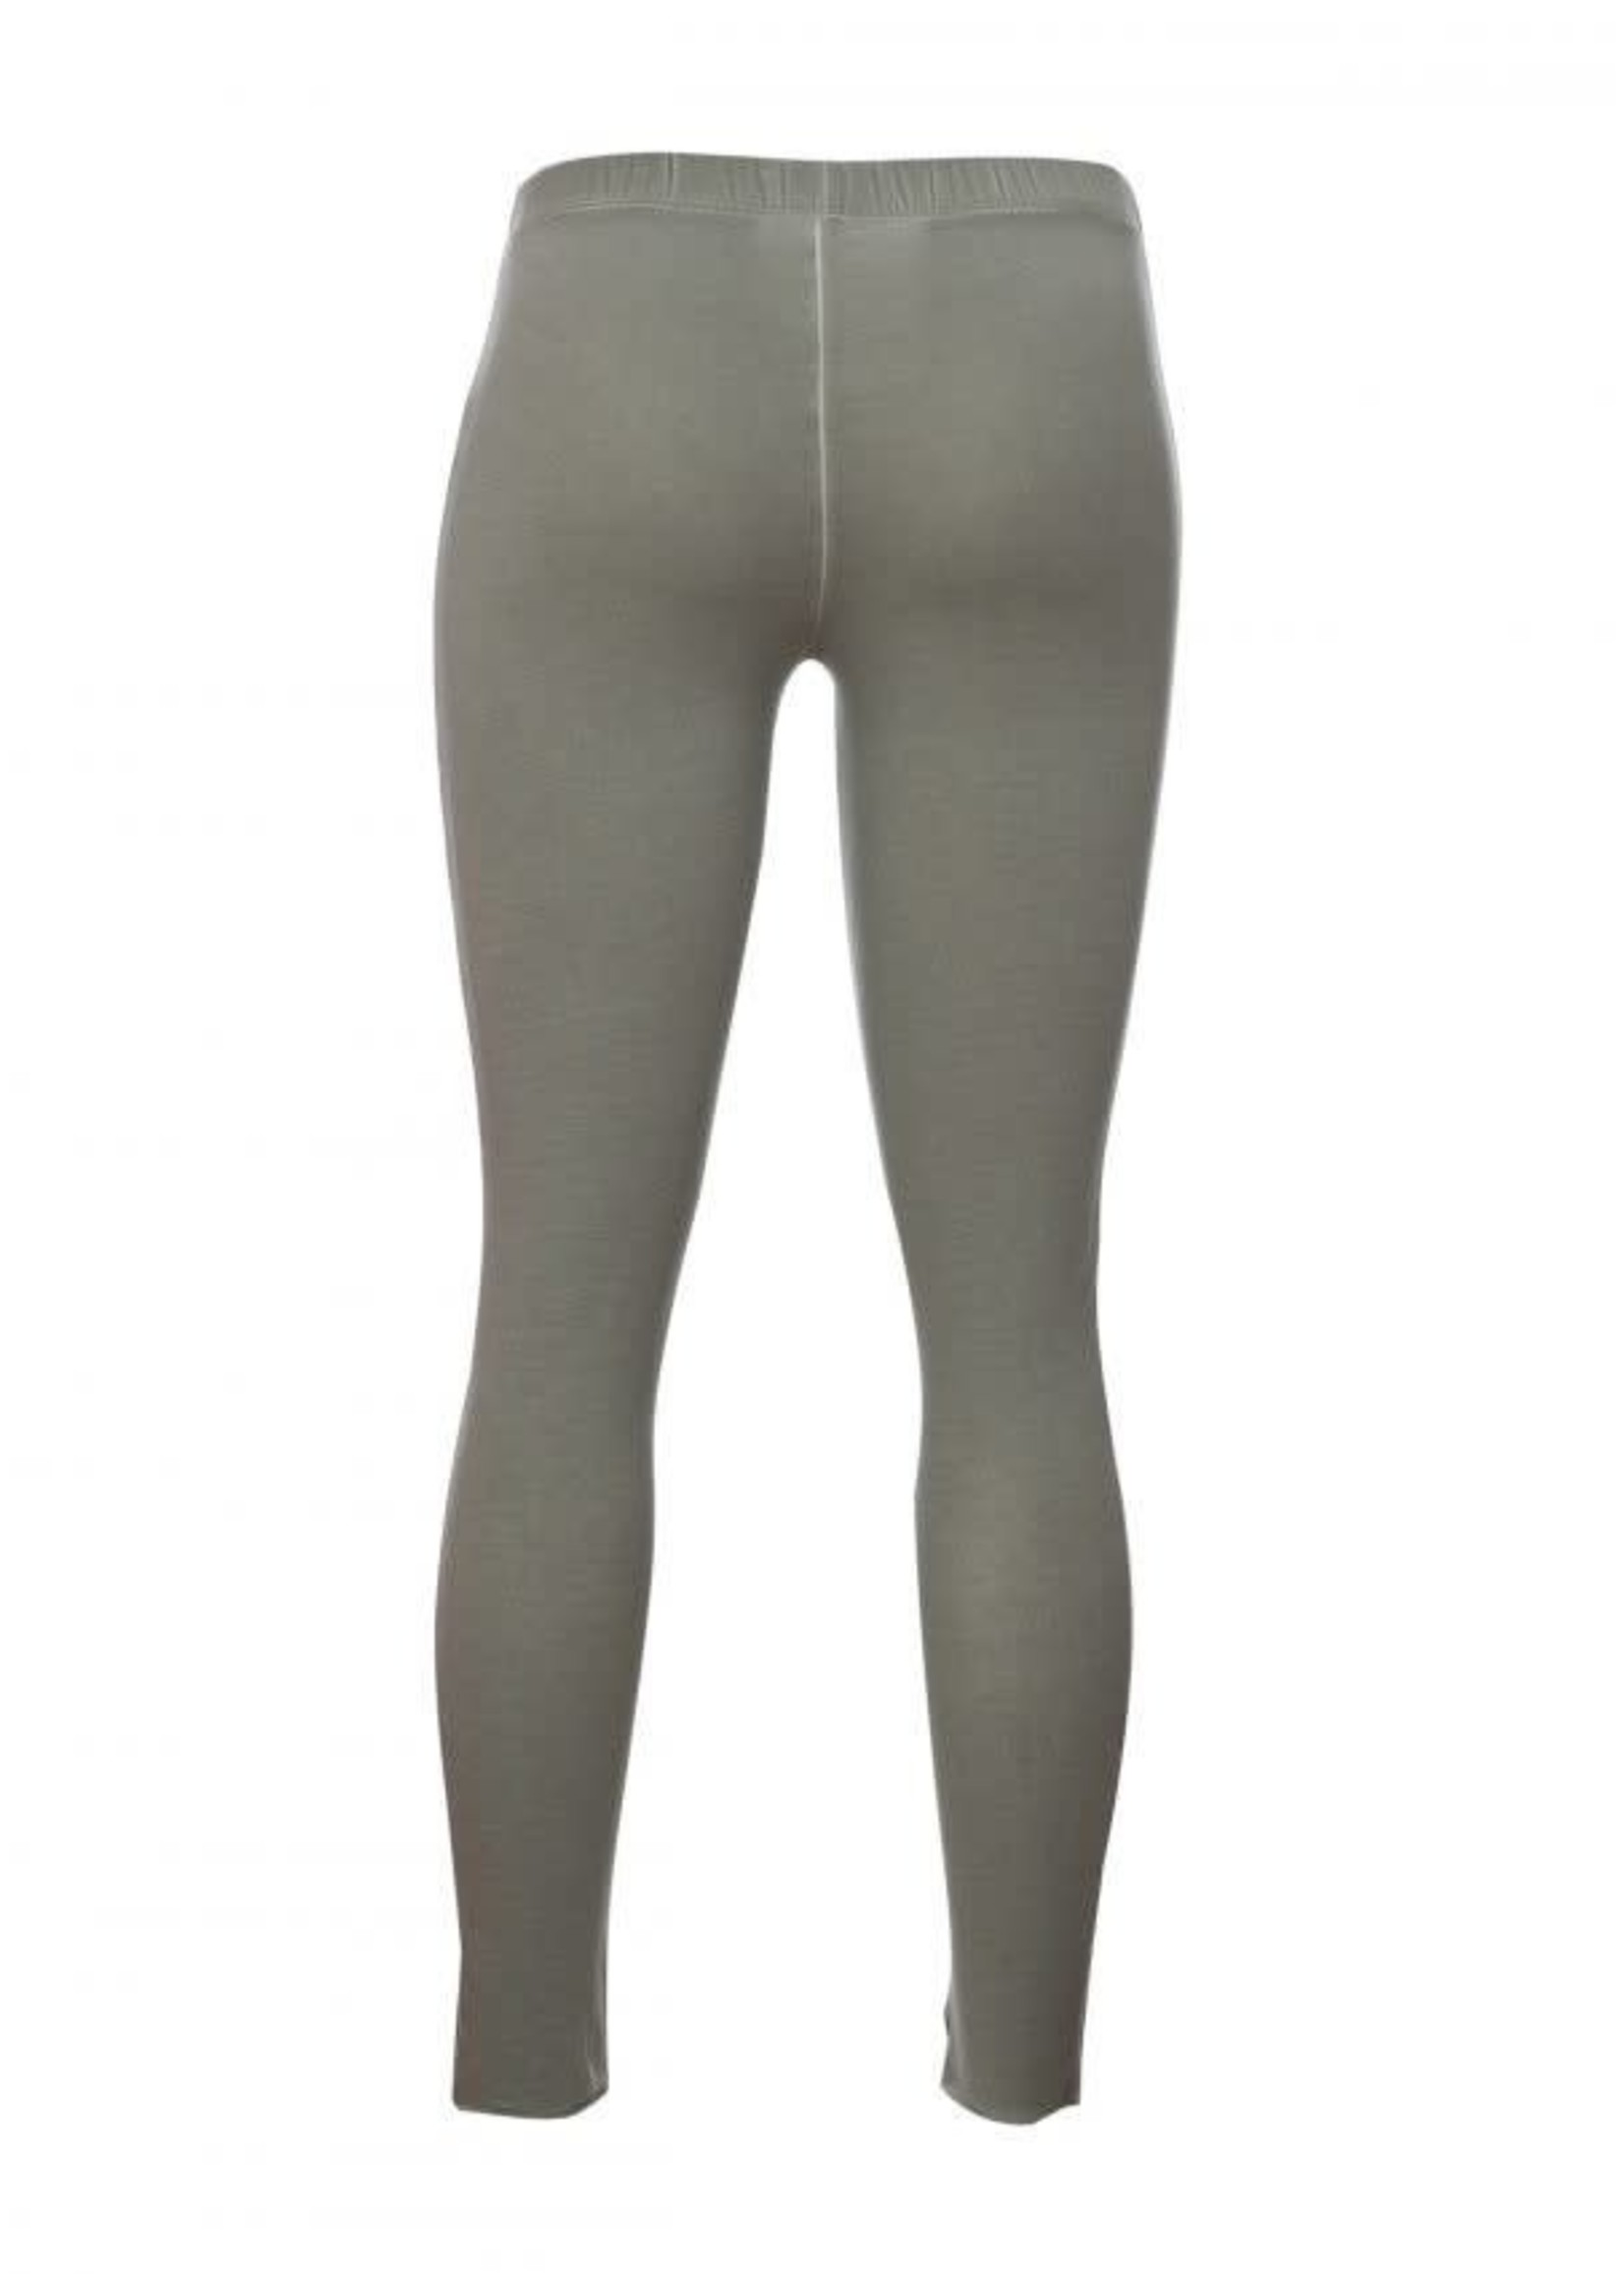 LUUKAA 20y206  cotton knitted leggings